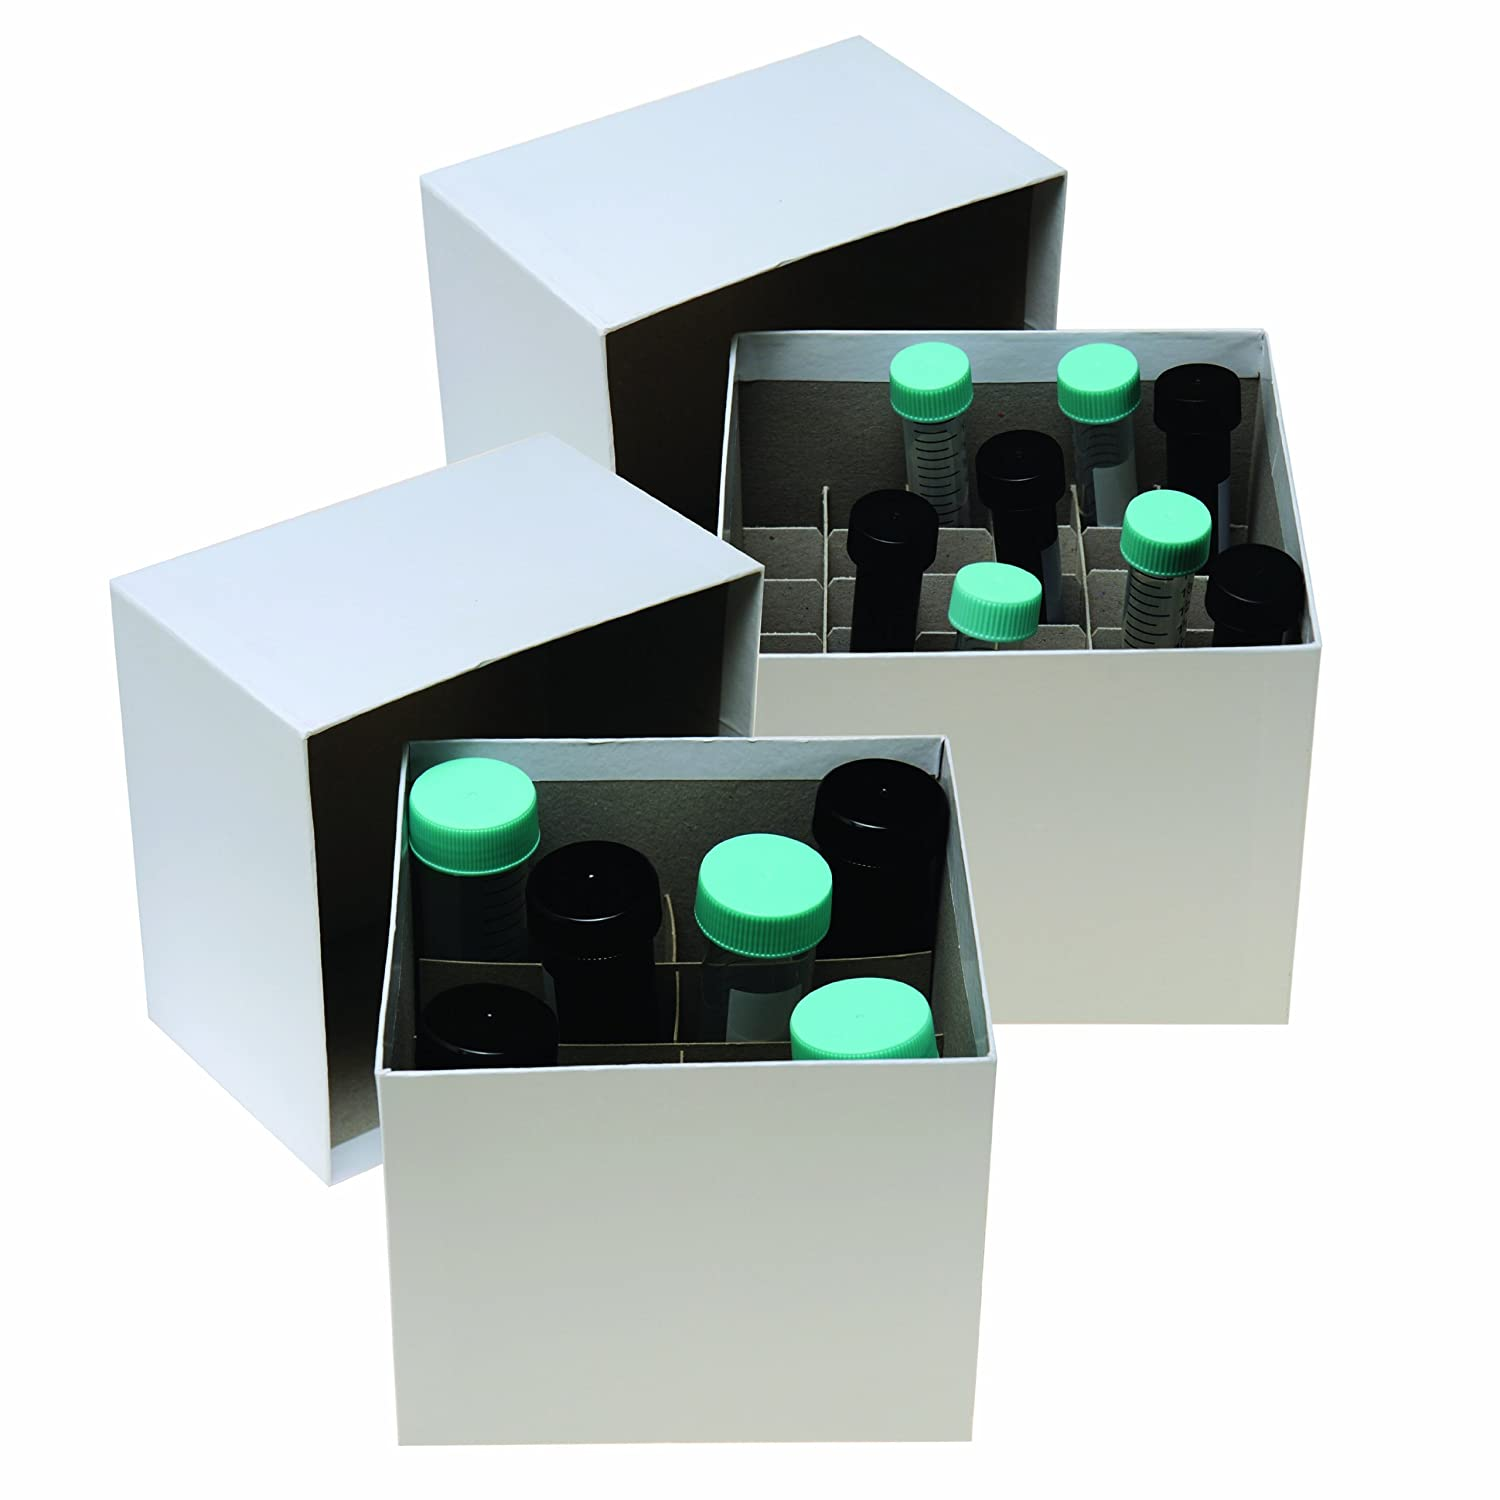 4-7//8 Length x 4-7//8 Width x 1-5//16 Height Pack of 12 Argos R3023 Cryo//Freezer Box 25 Place Cell Divider